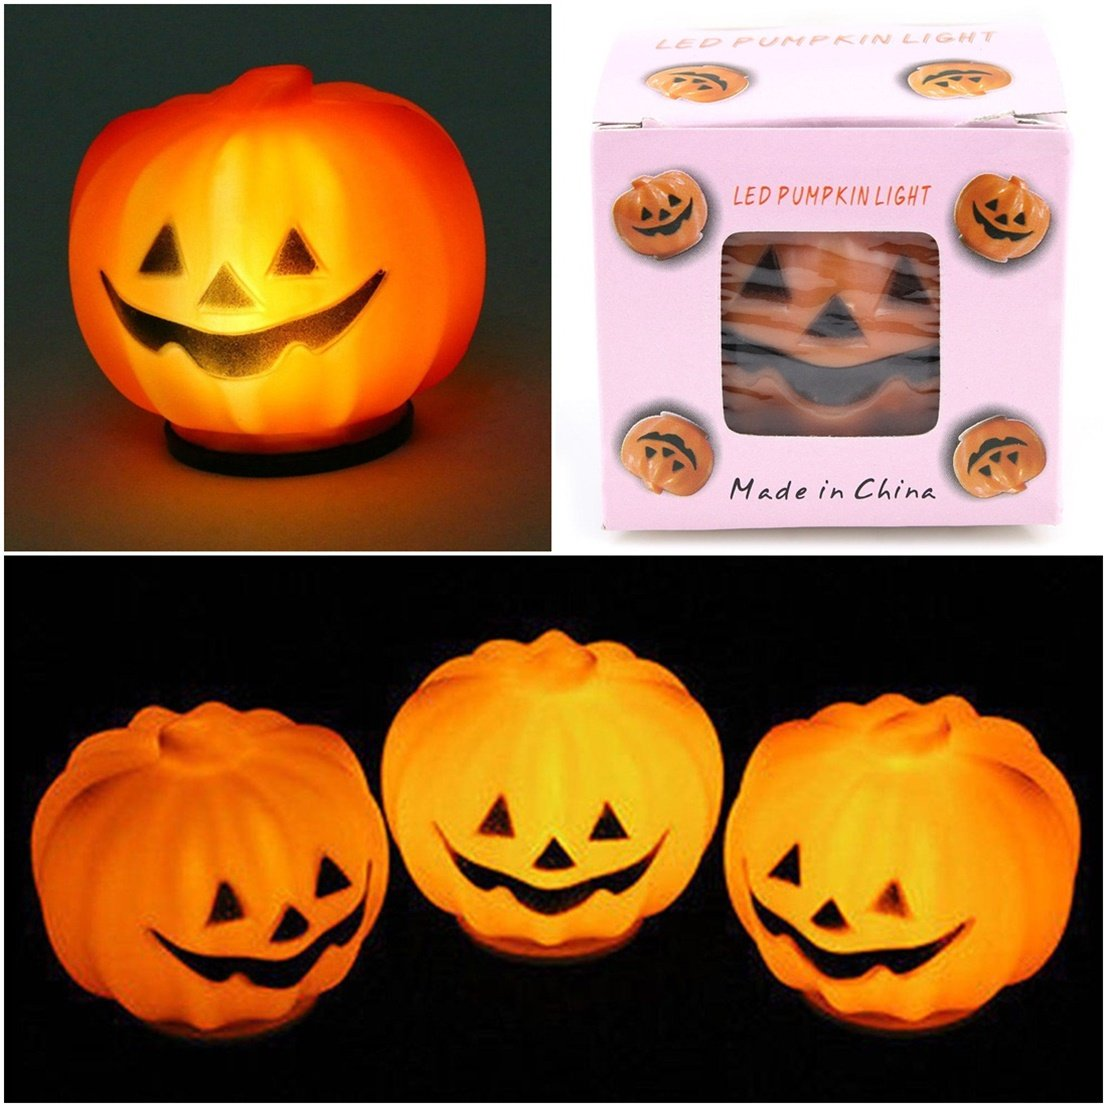 1Pc Unrivaled Popular Halloween LED Nightlight Carnival Props Decor Pattern Round Pumpkin Color Orange by GVGs Shop (Image #1)